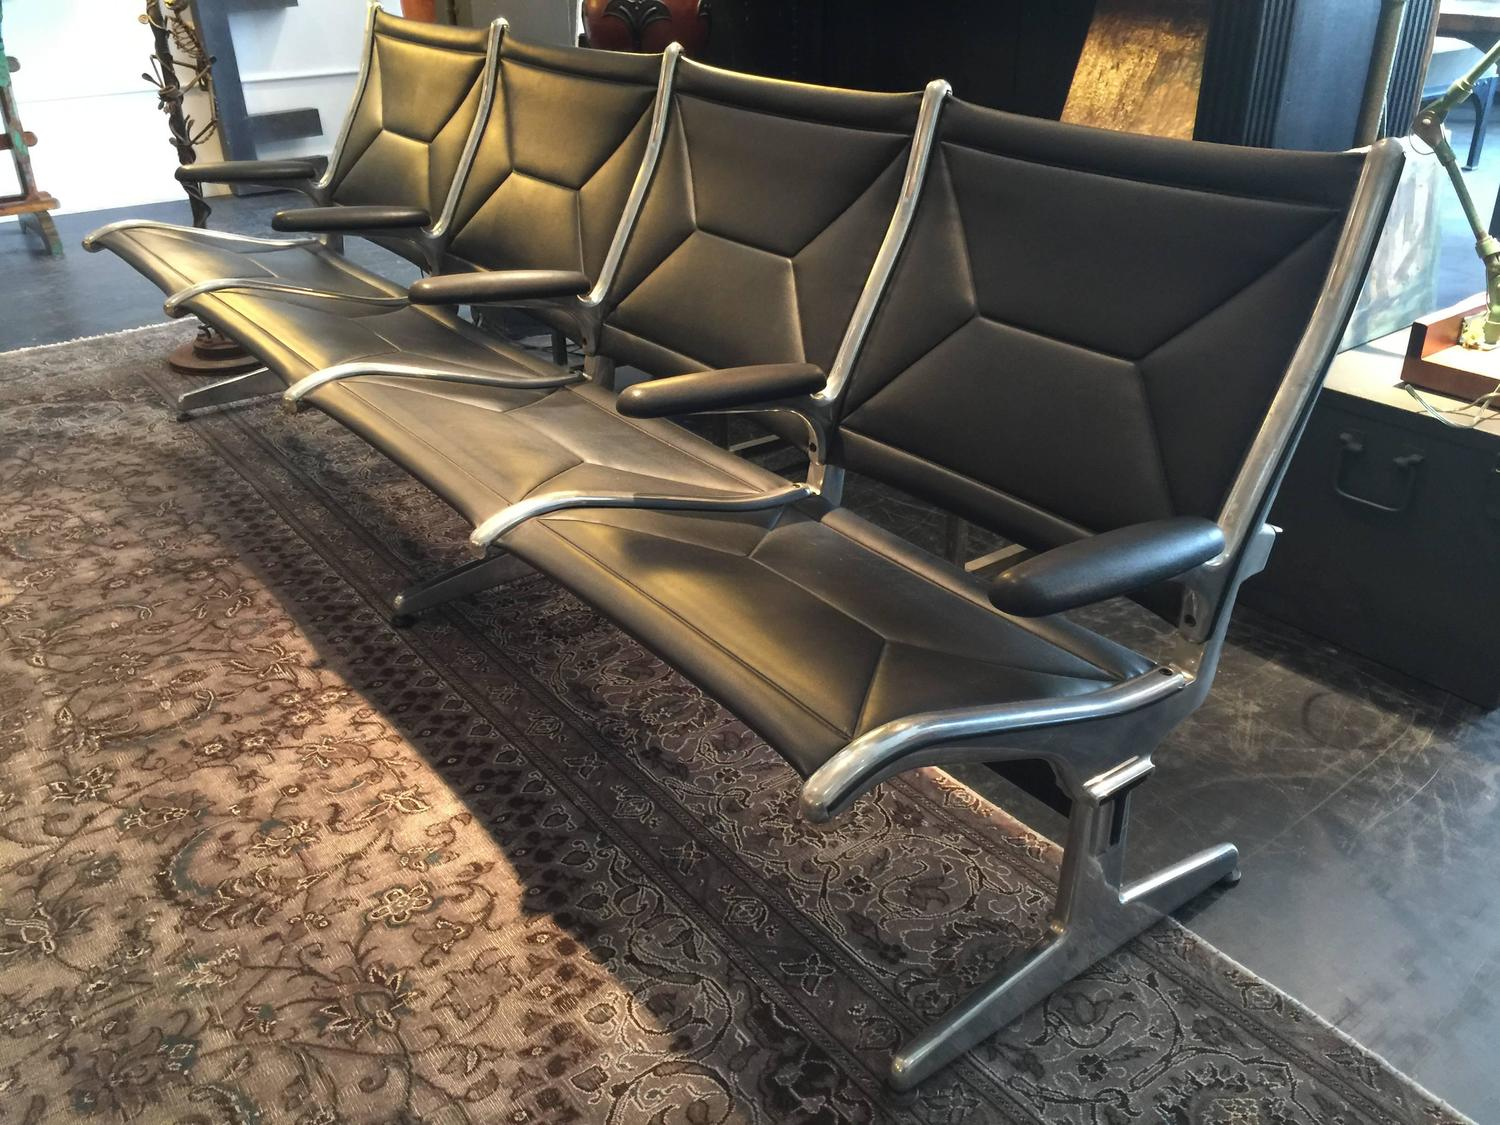 herman miller chairs seattle steel chair size vintage airport bench at 1stdibs